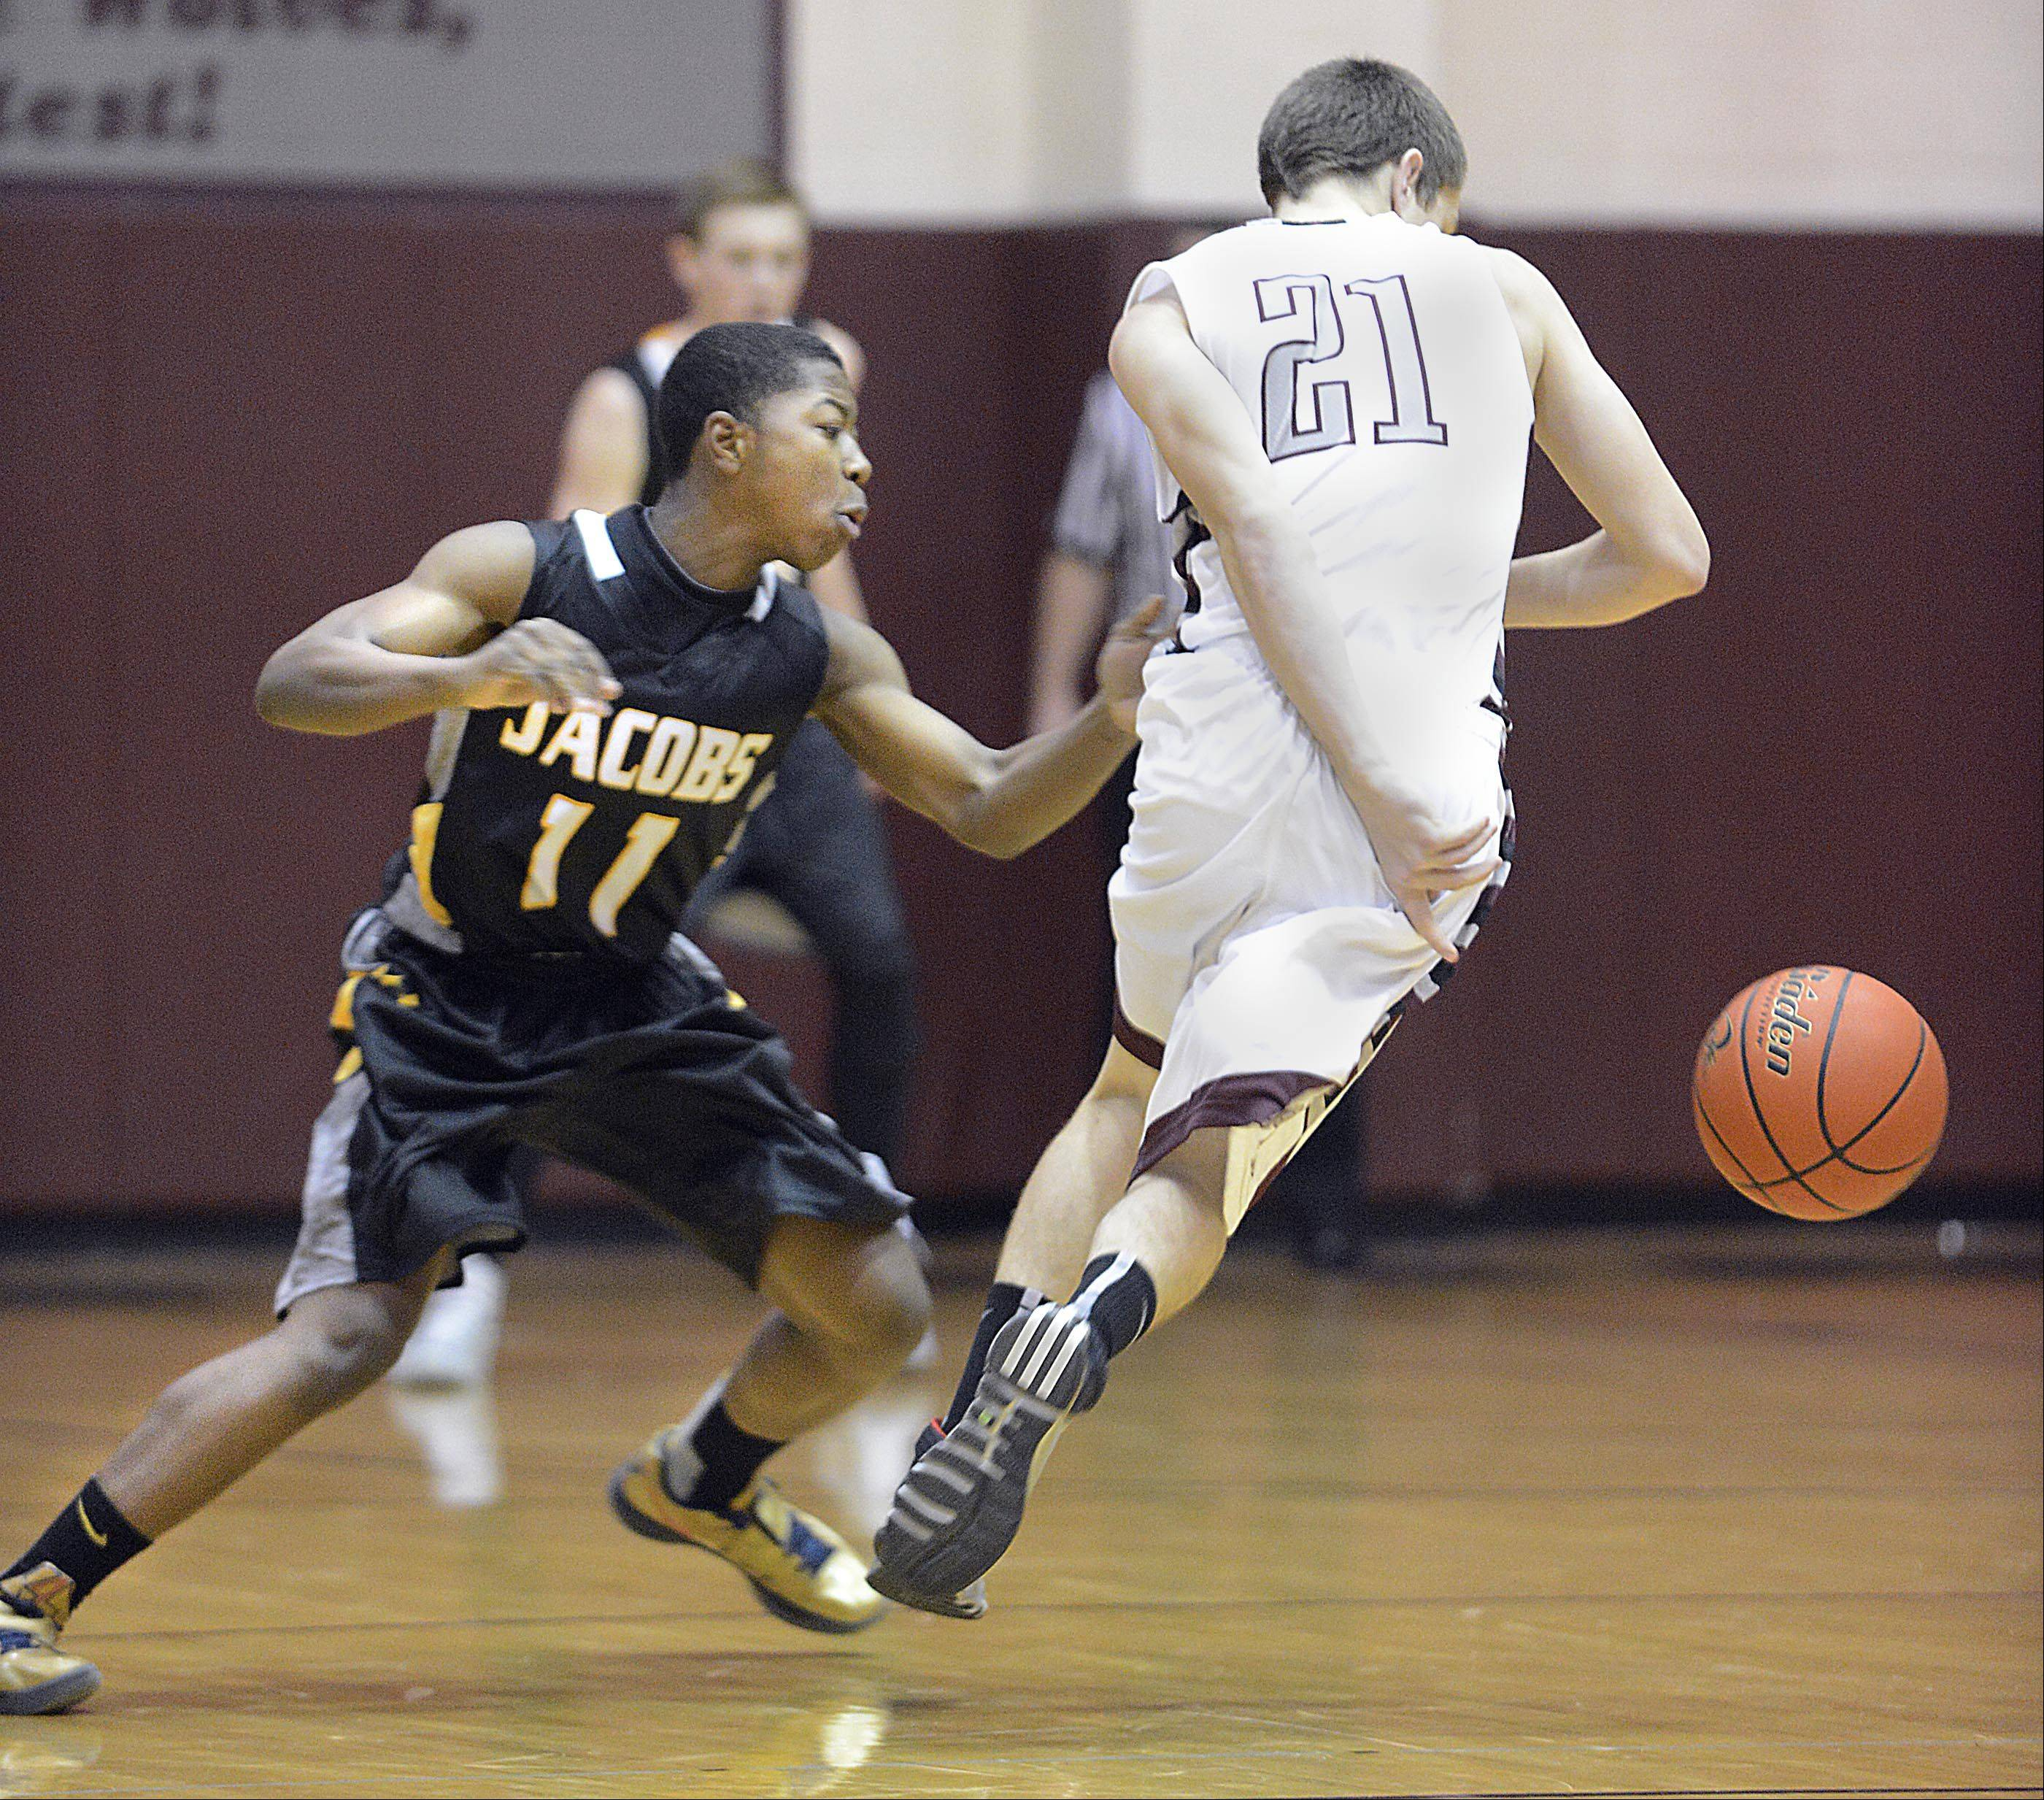 Prairie Ridge's Matt Perhats dribbles around Jacobs' Mike Canady.